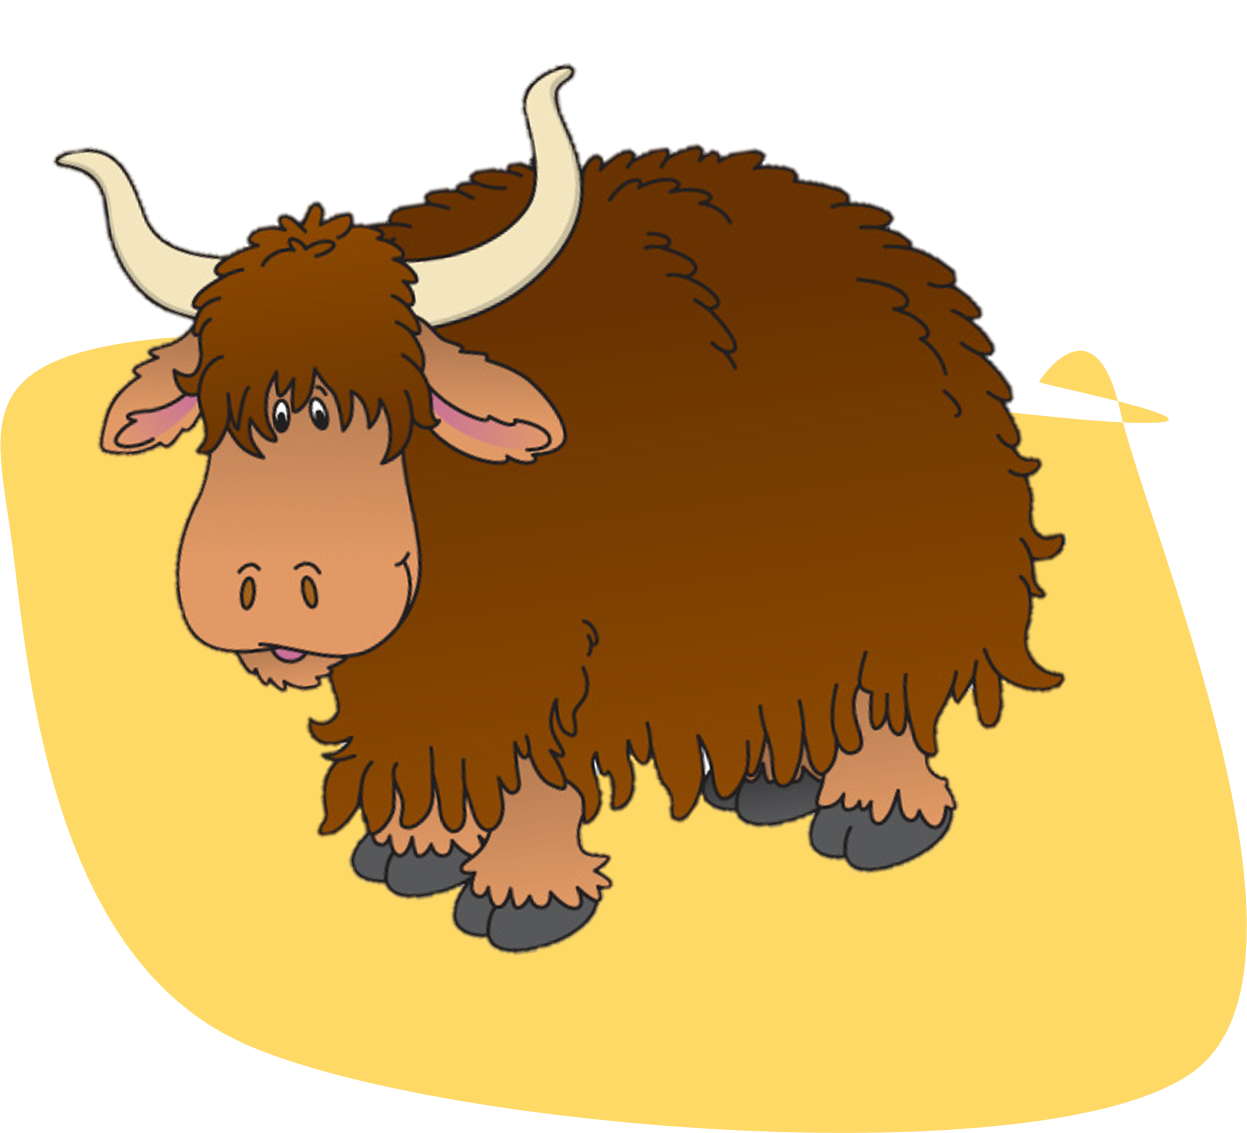 Yak images clipart transparent stock Free Yak Cliparts, Download Free Clip Art, Free Clip Art on ... transparent stock